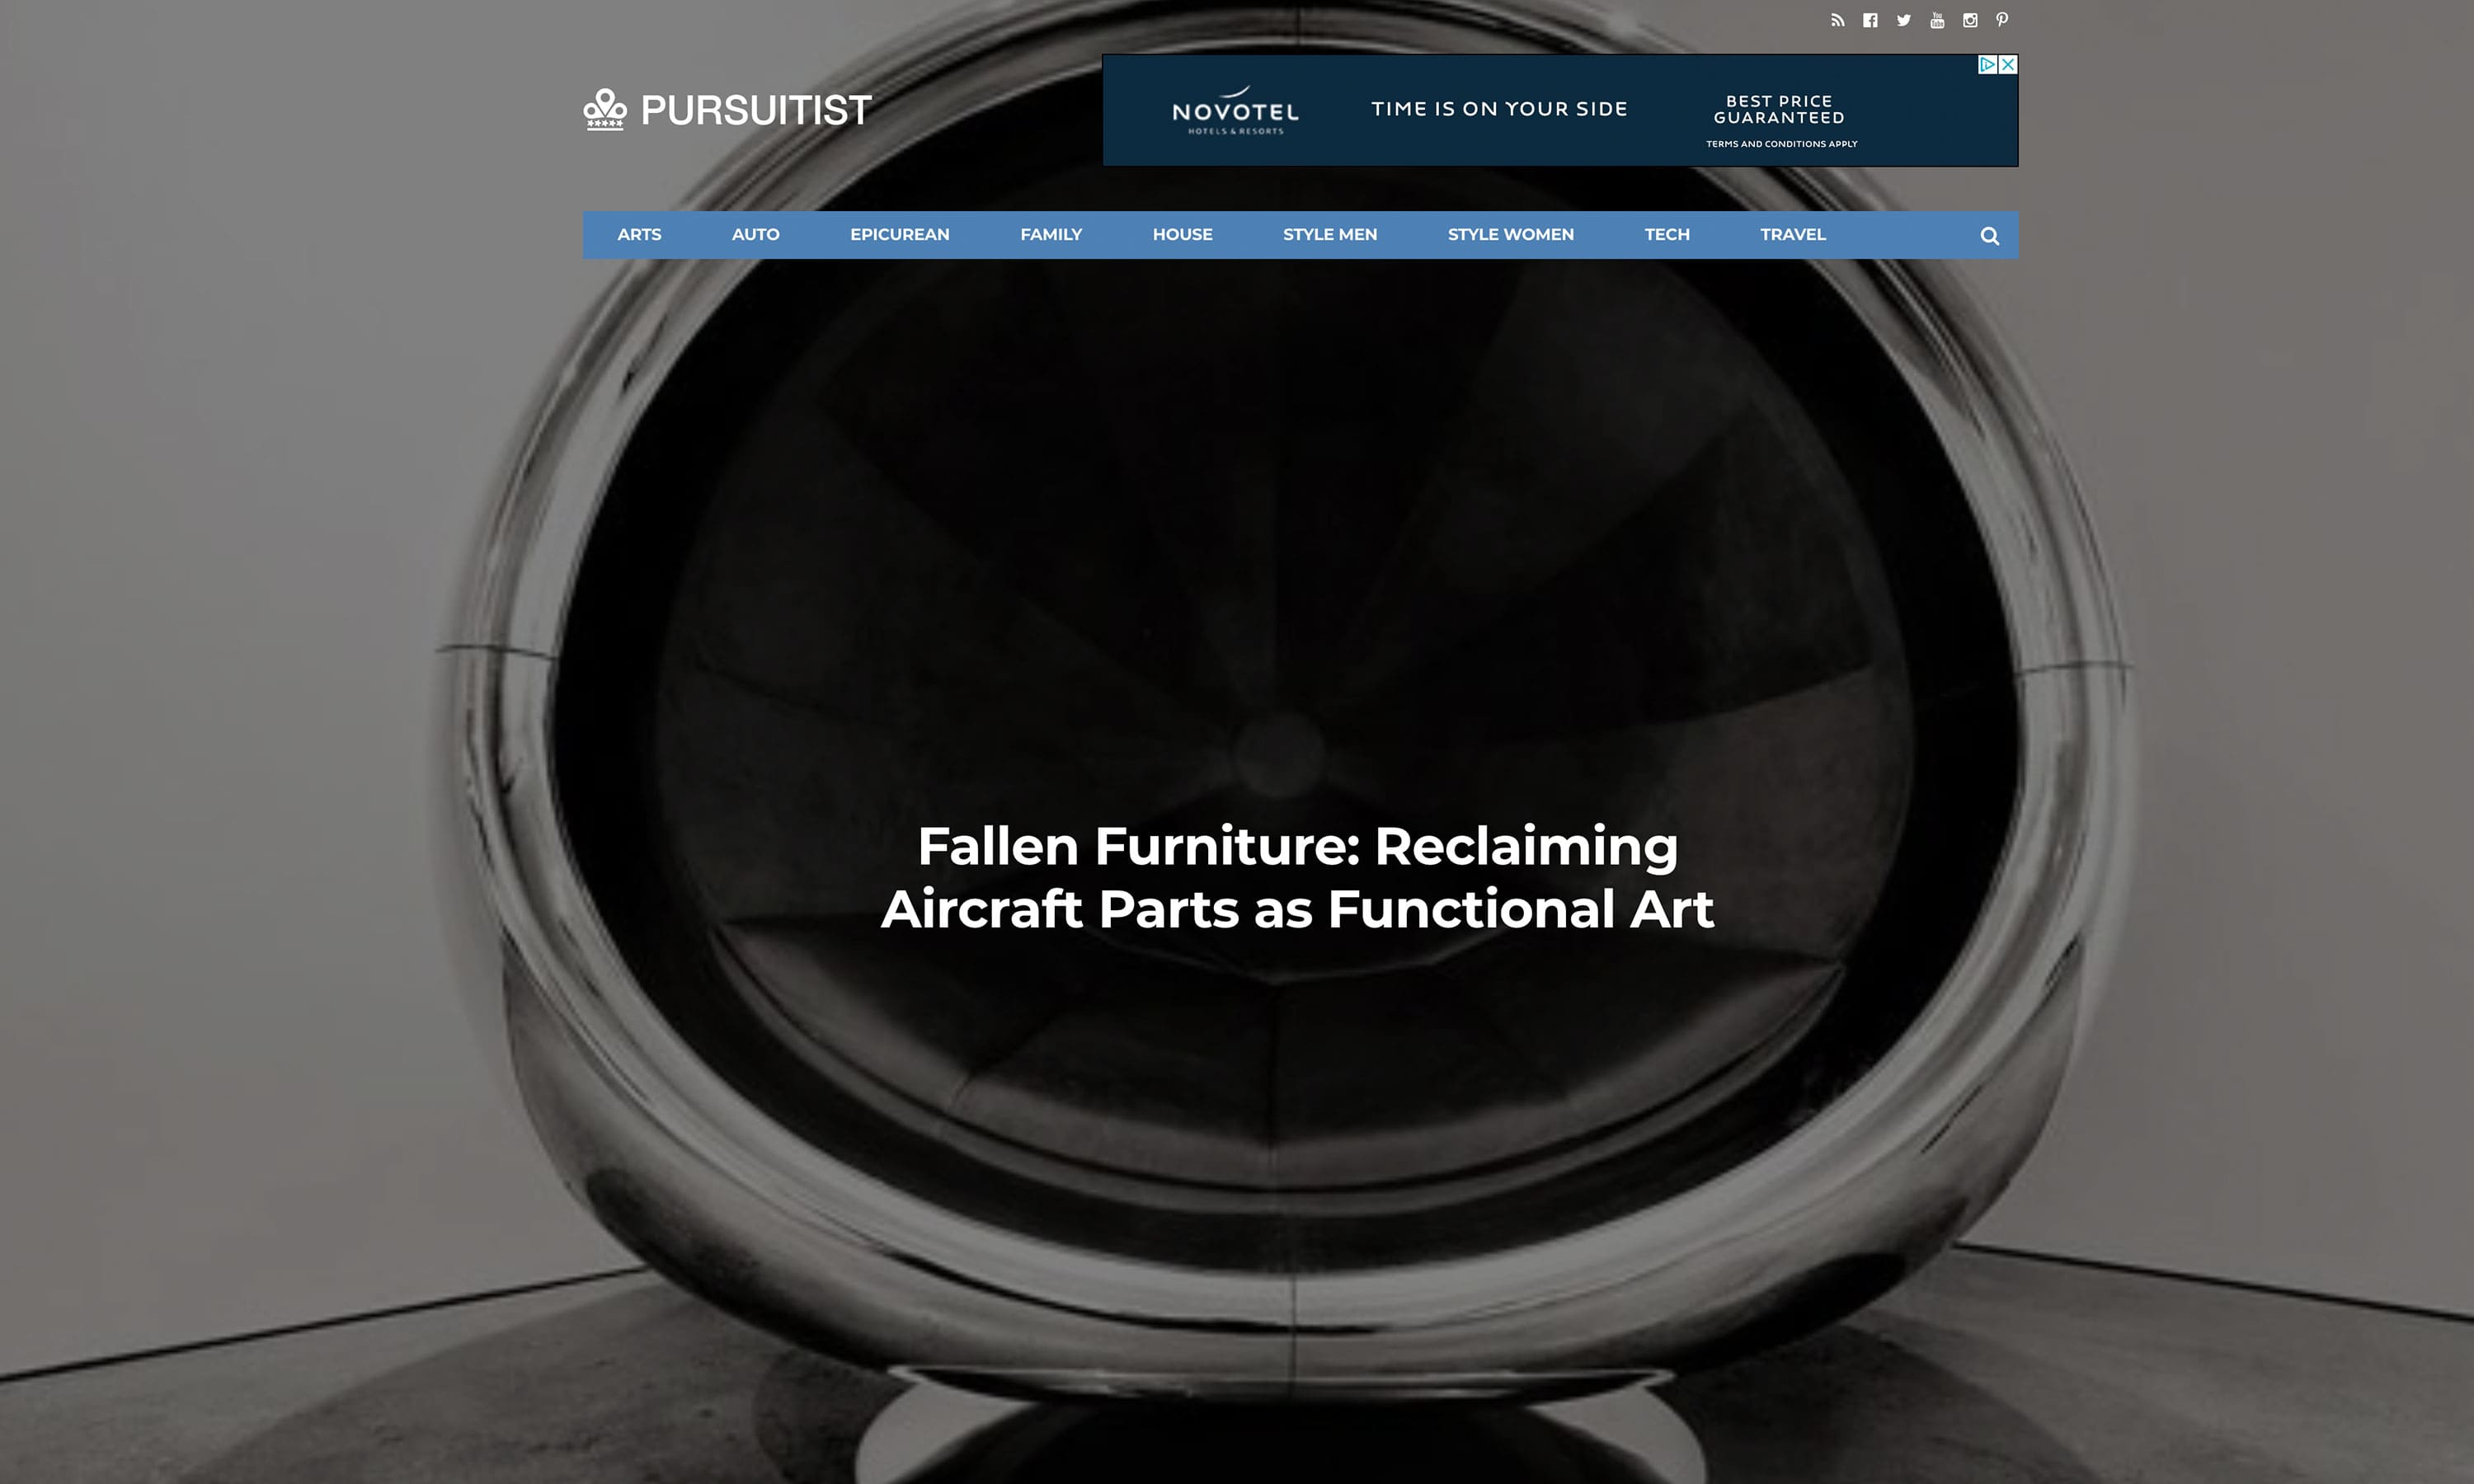 Pursuitist Aircraft Parts As Functional Art